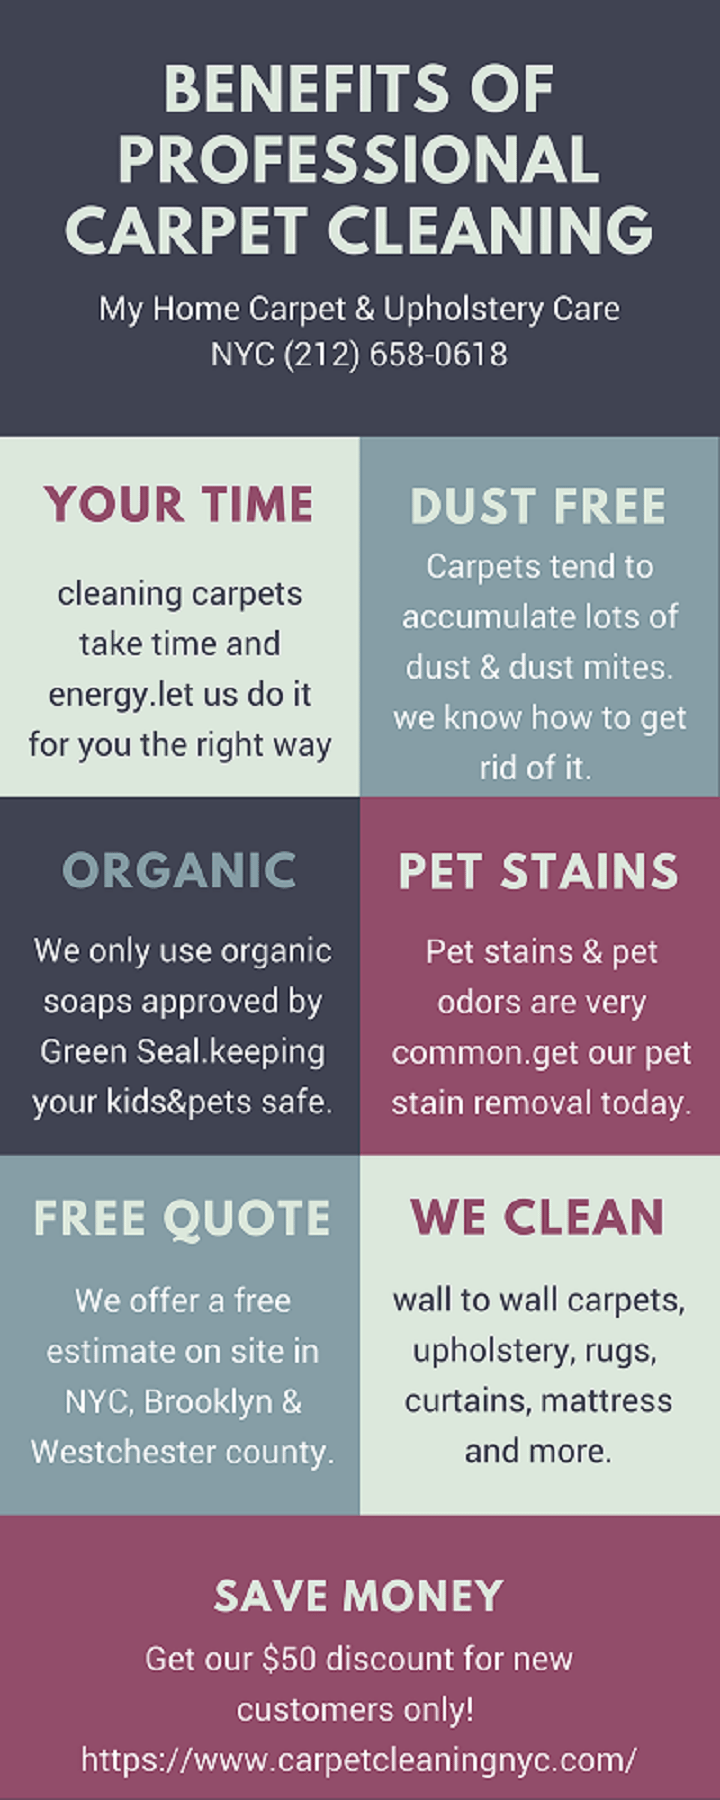 carpet cleaning NYC benefits